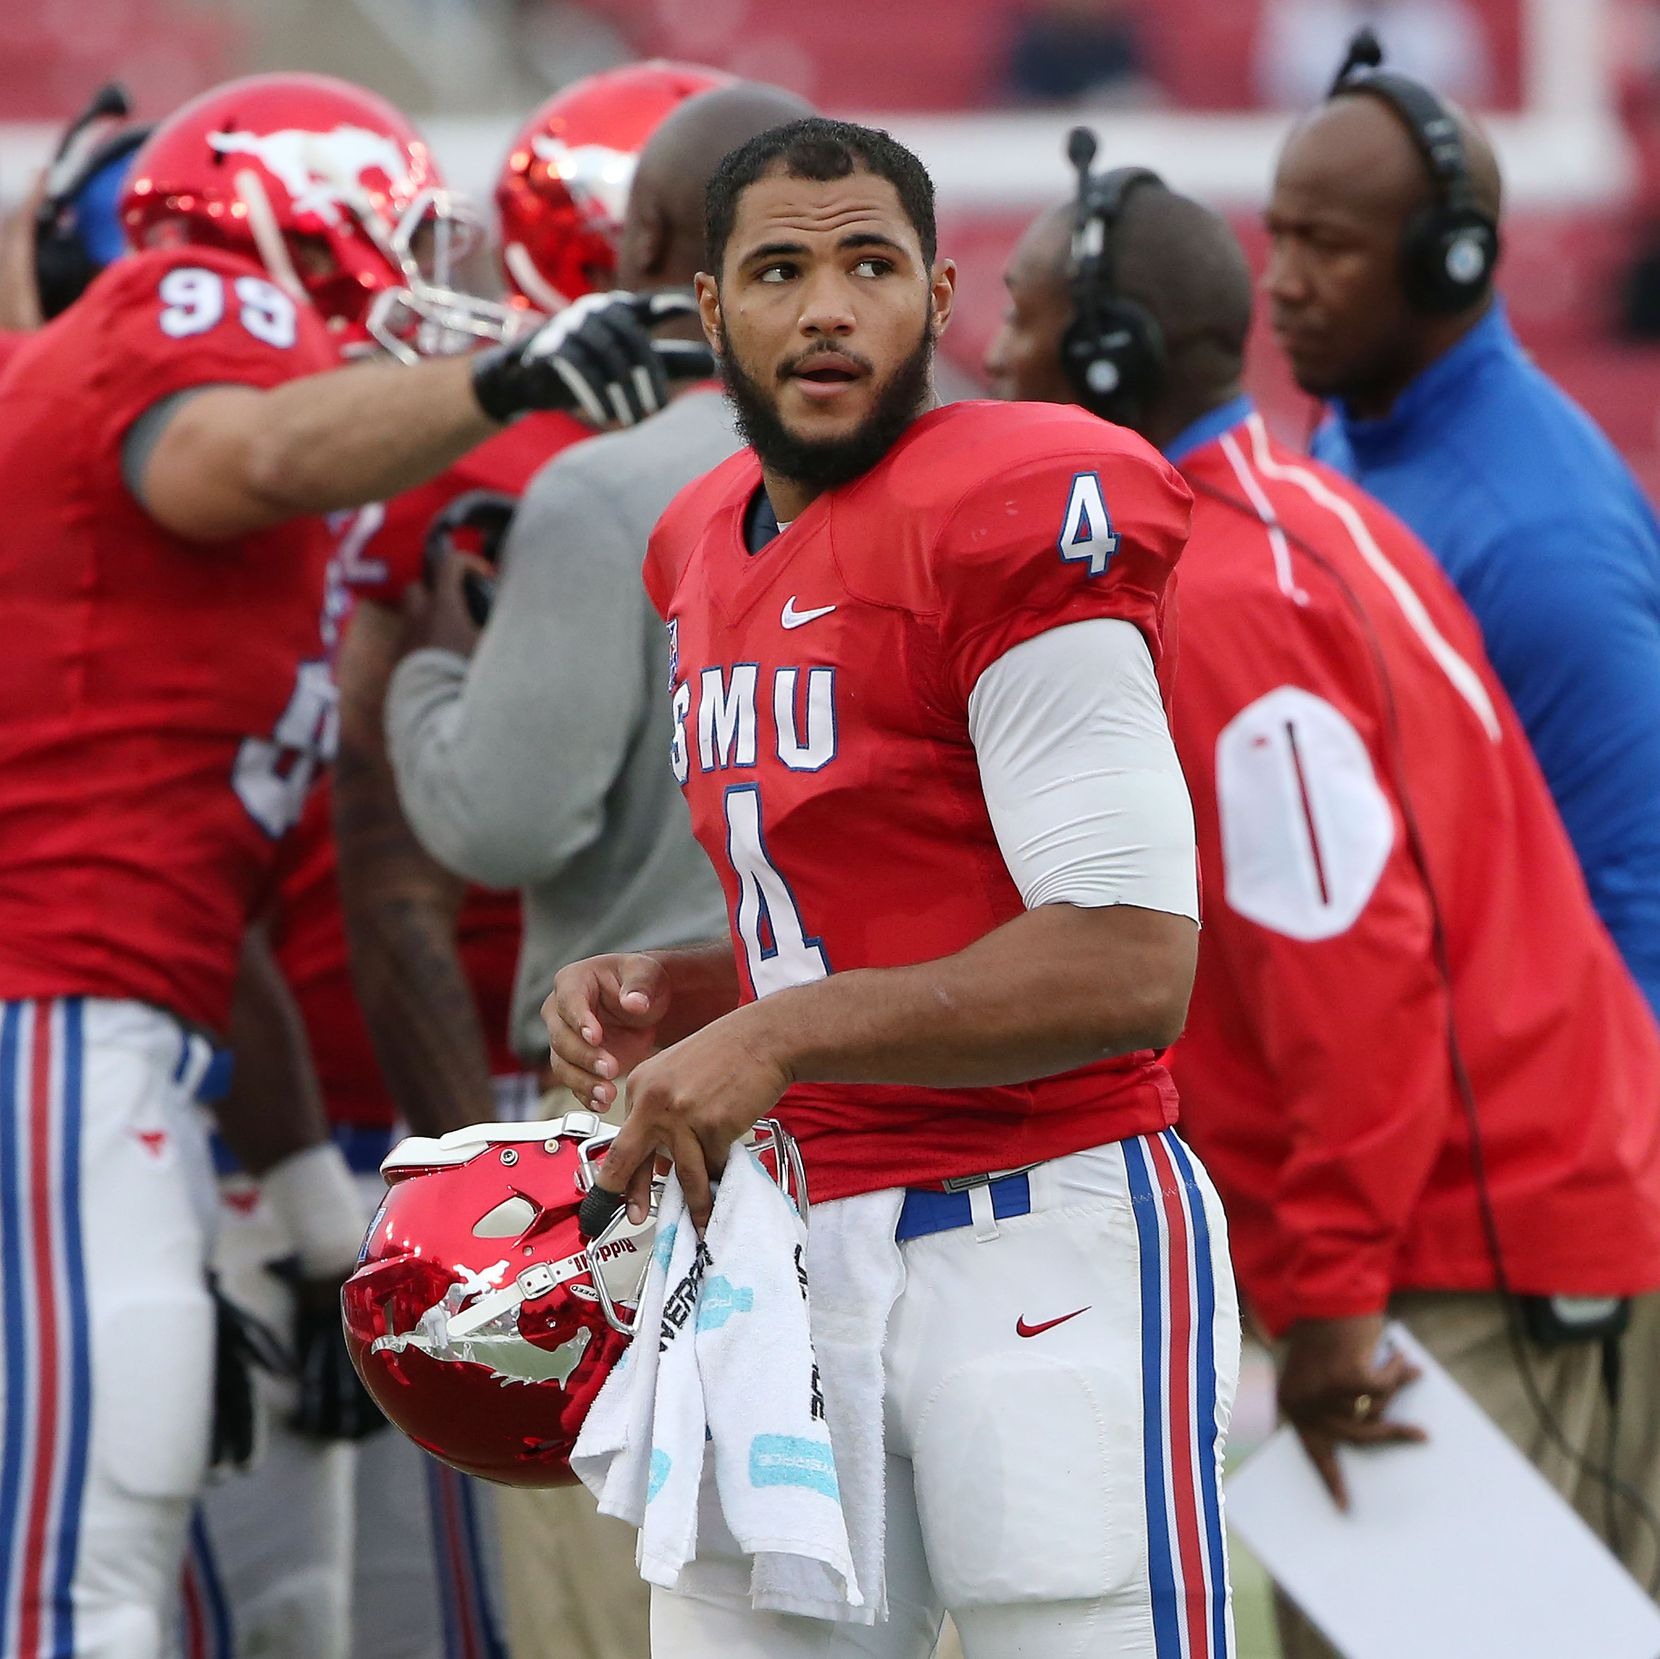 Southern Methodist Mustangs quarterback Matt Davis (4) walks by the huddle in the first quarter during an NCAA football game between Tulsa and SMU at Gerald J. Ford Stadium in Dallas Saturday October 31, 2015. Tulsa Golden Hurricane beat Southern Methodist Mustangs 40-31. (Andy Jacobsohn/The Dallas Morning News)